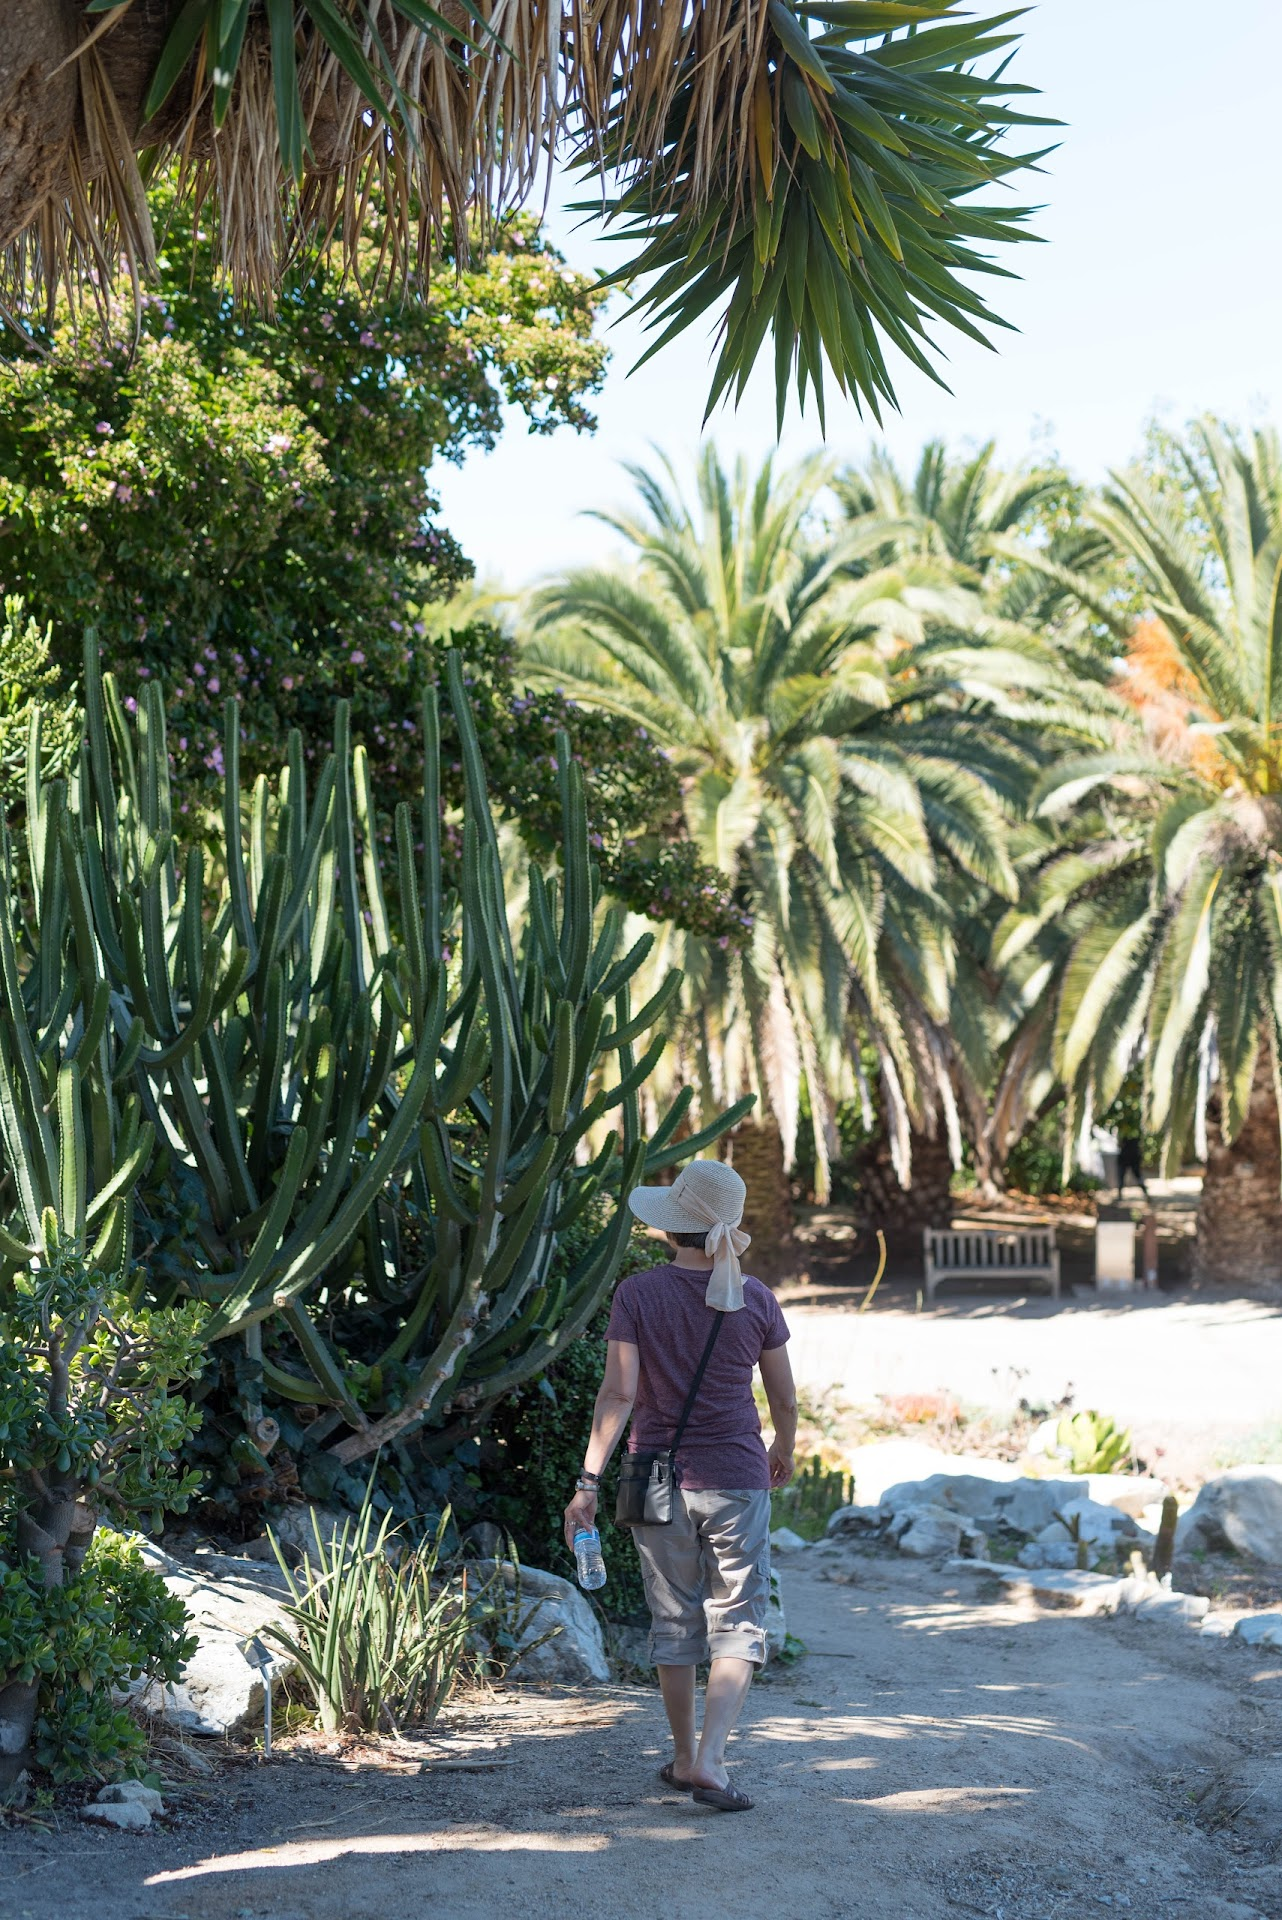 south coast botanic garden, photography, cactus, things to do in socal, torrance,